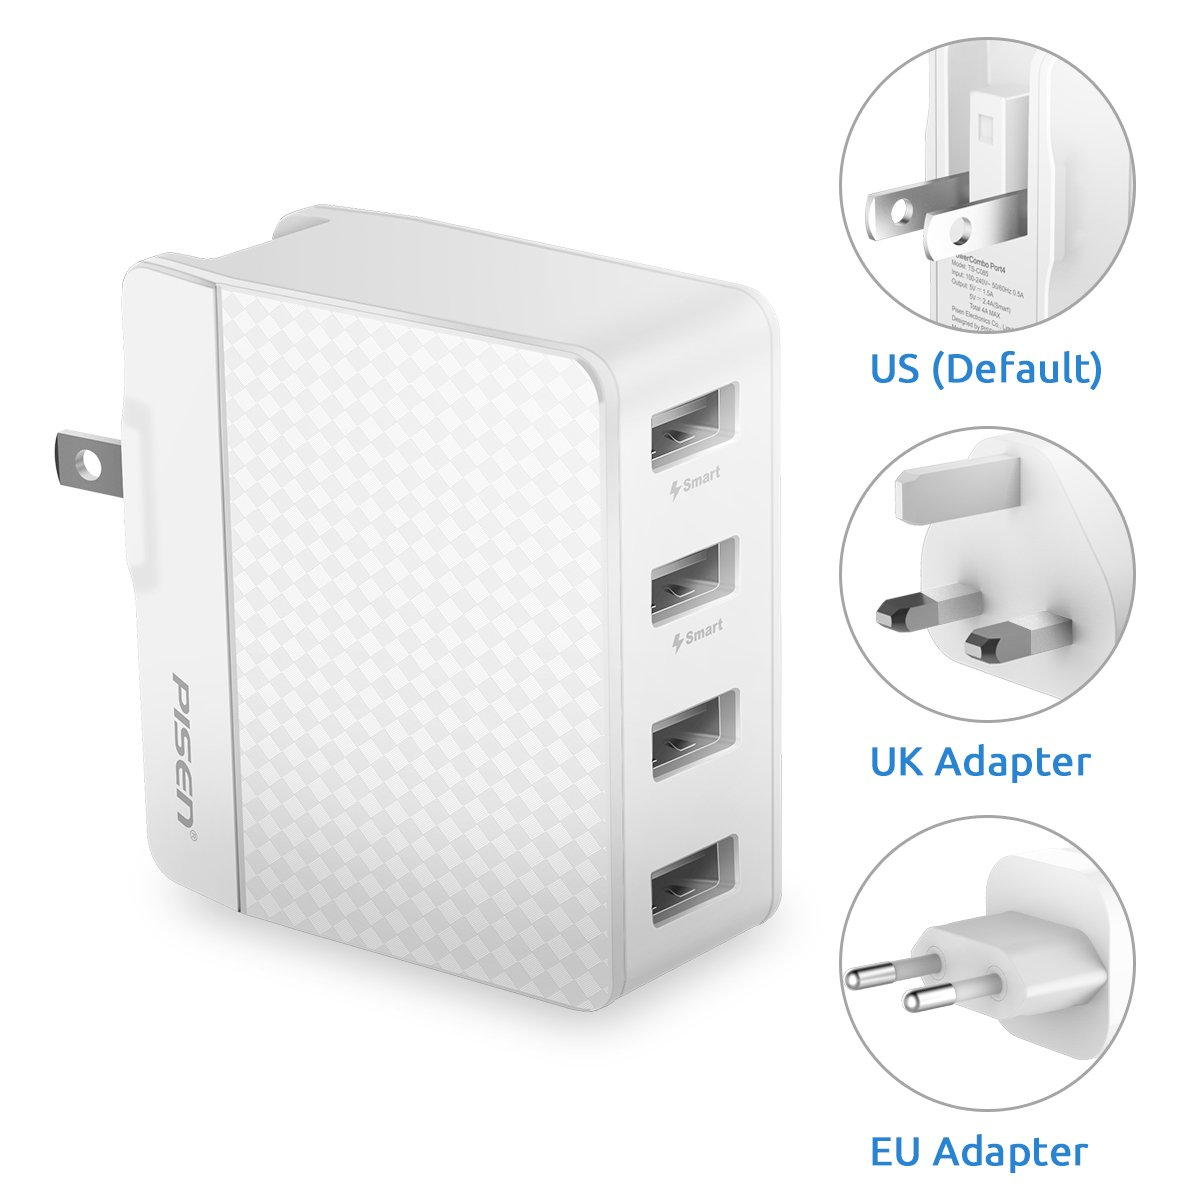 PISEN 4 Port USB Wall Charger, Universal Travel Adapter with US UK EU Foldable AC Plug 20W 5V 4A Total Output for iPhone, IPad, Samsung Galaxy, Nexus, Tablets and Android Smartphones (White)